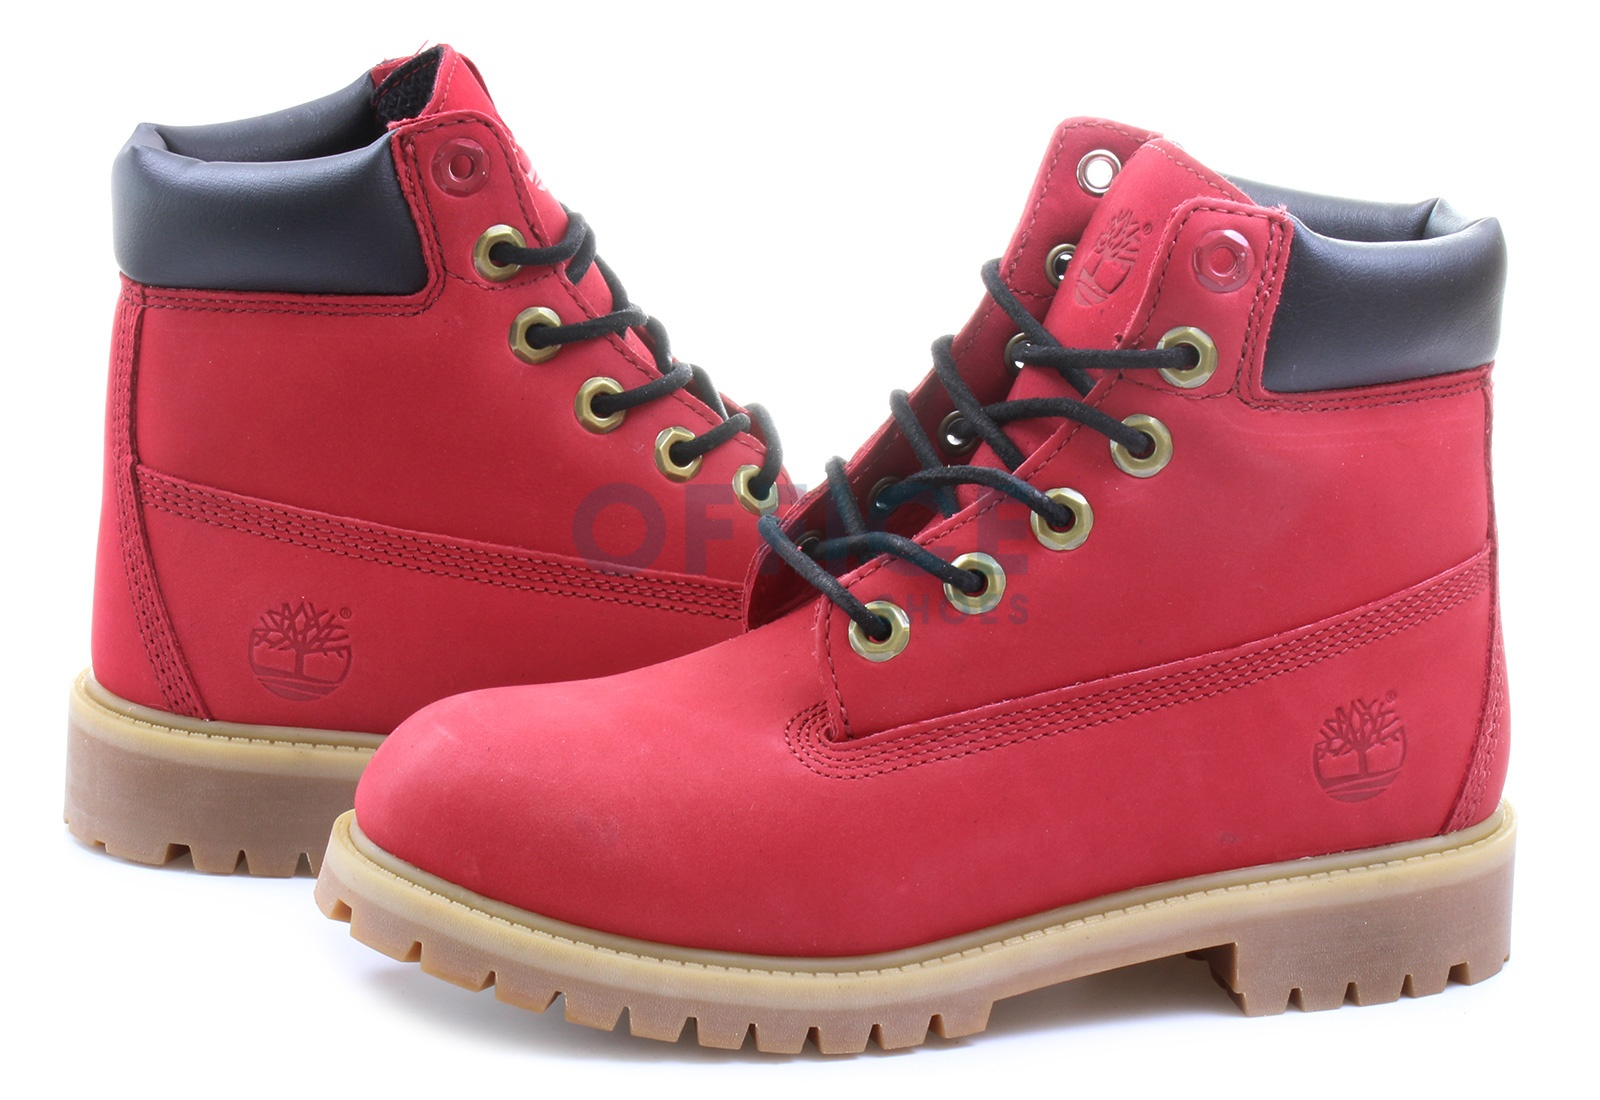 where can i buy timberland boots online